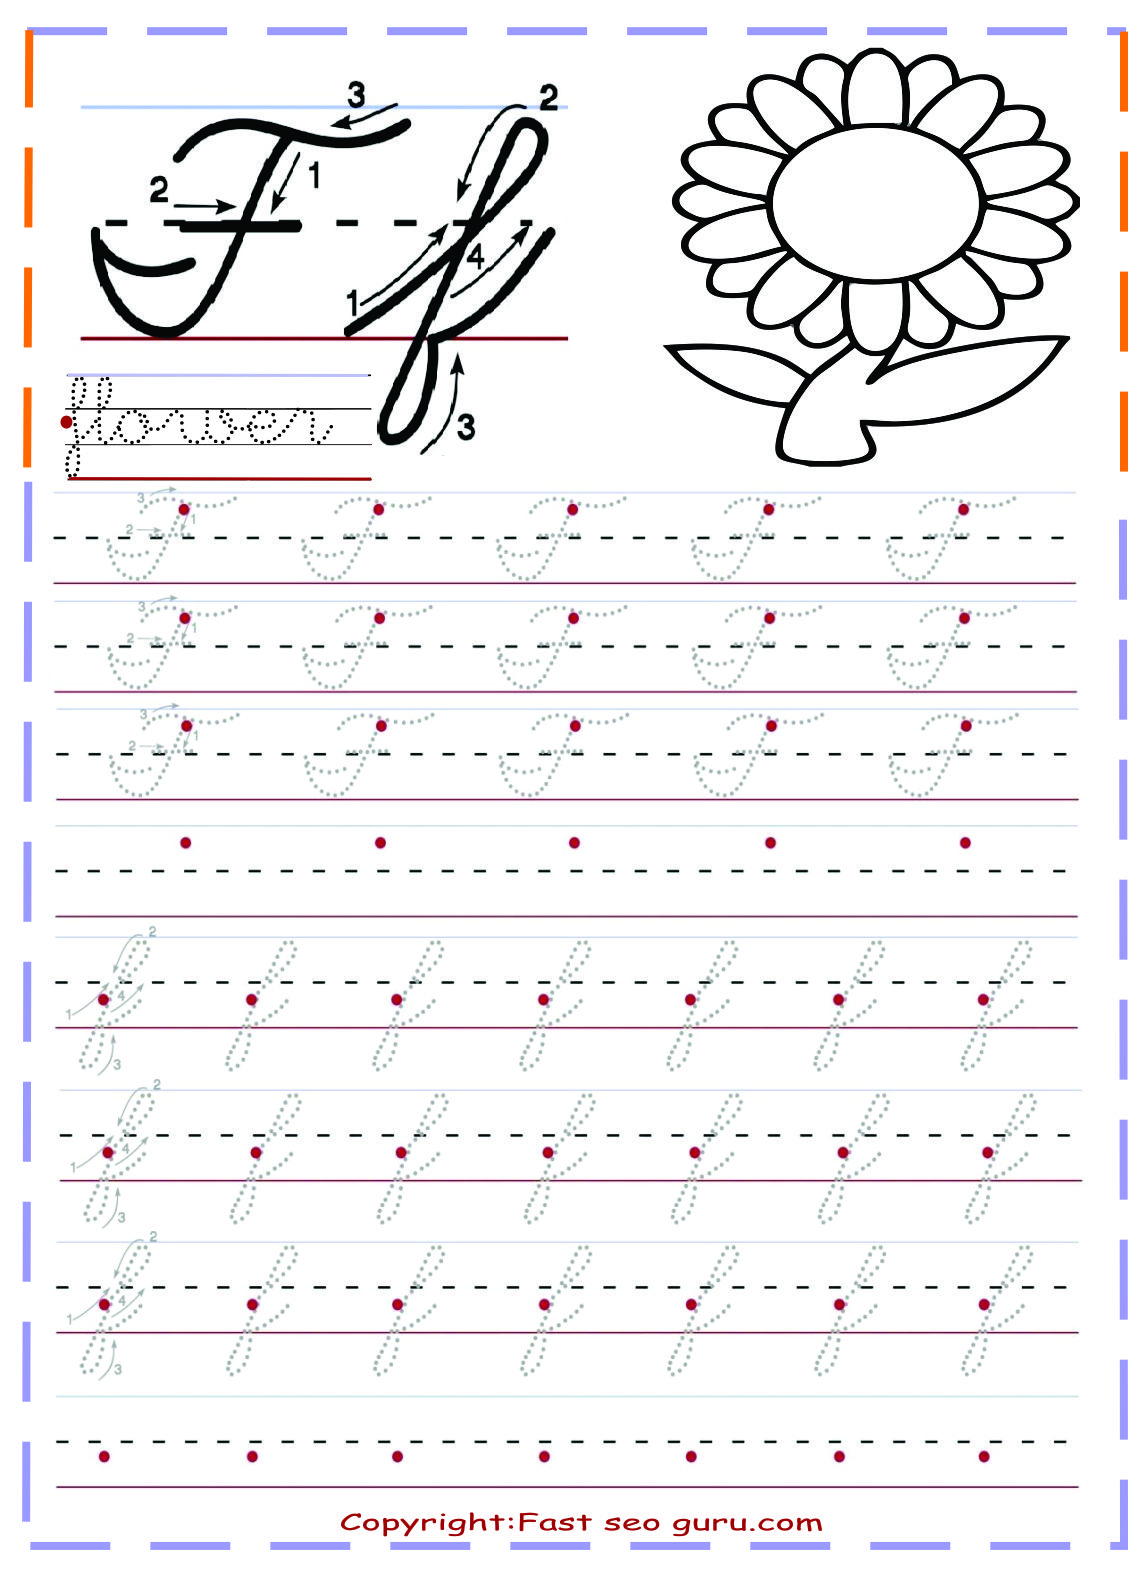 Cursive Handwriting Tracing Worksheets For Practice Letter F throughout Alphabet Worksheets Cursive